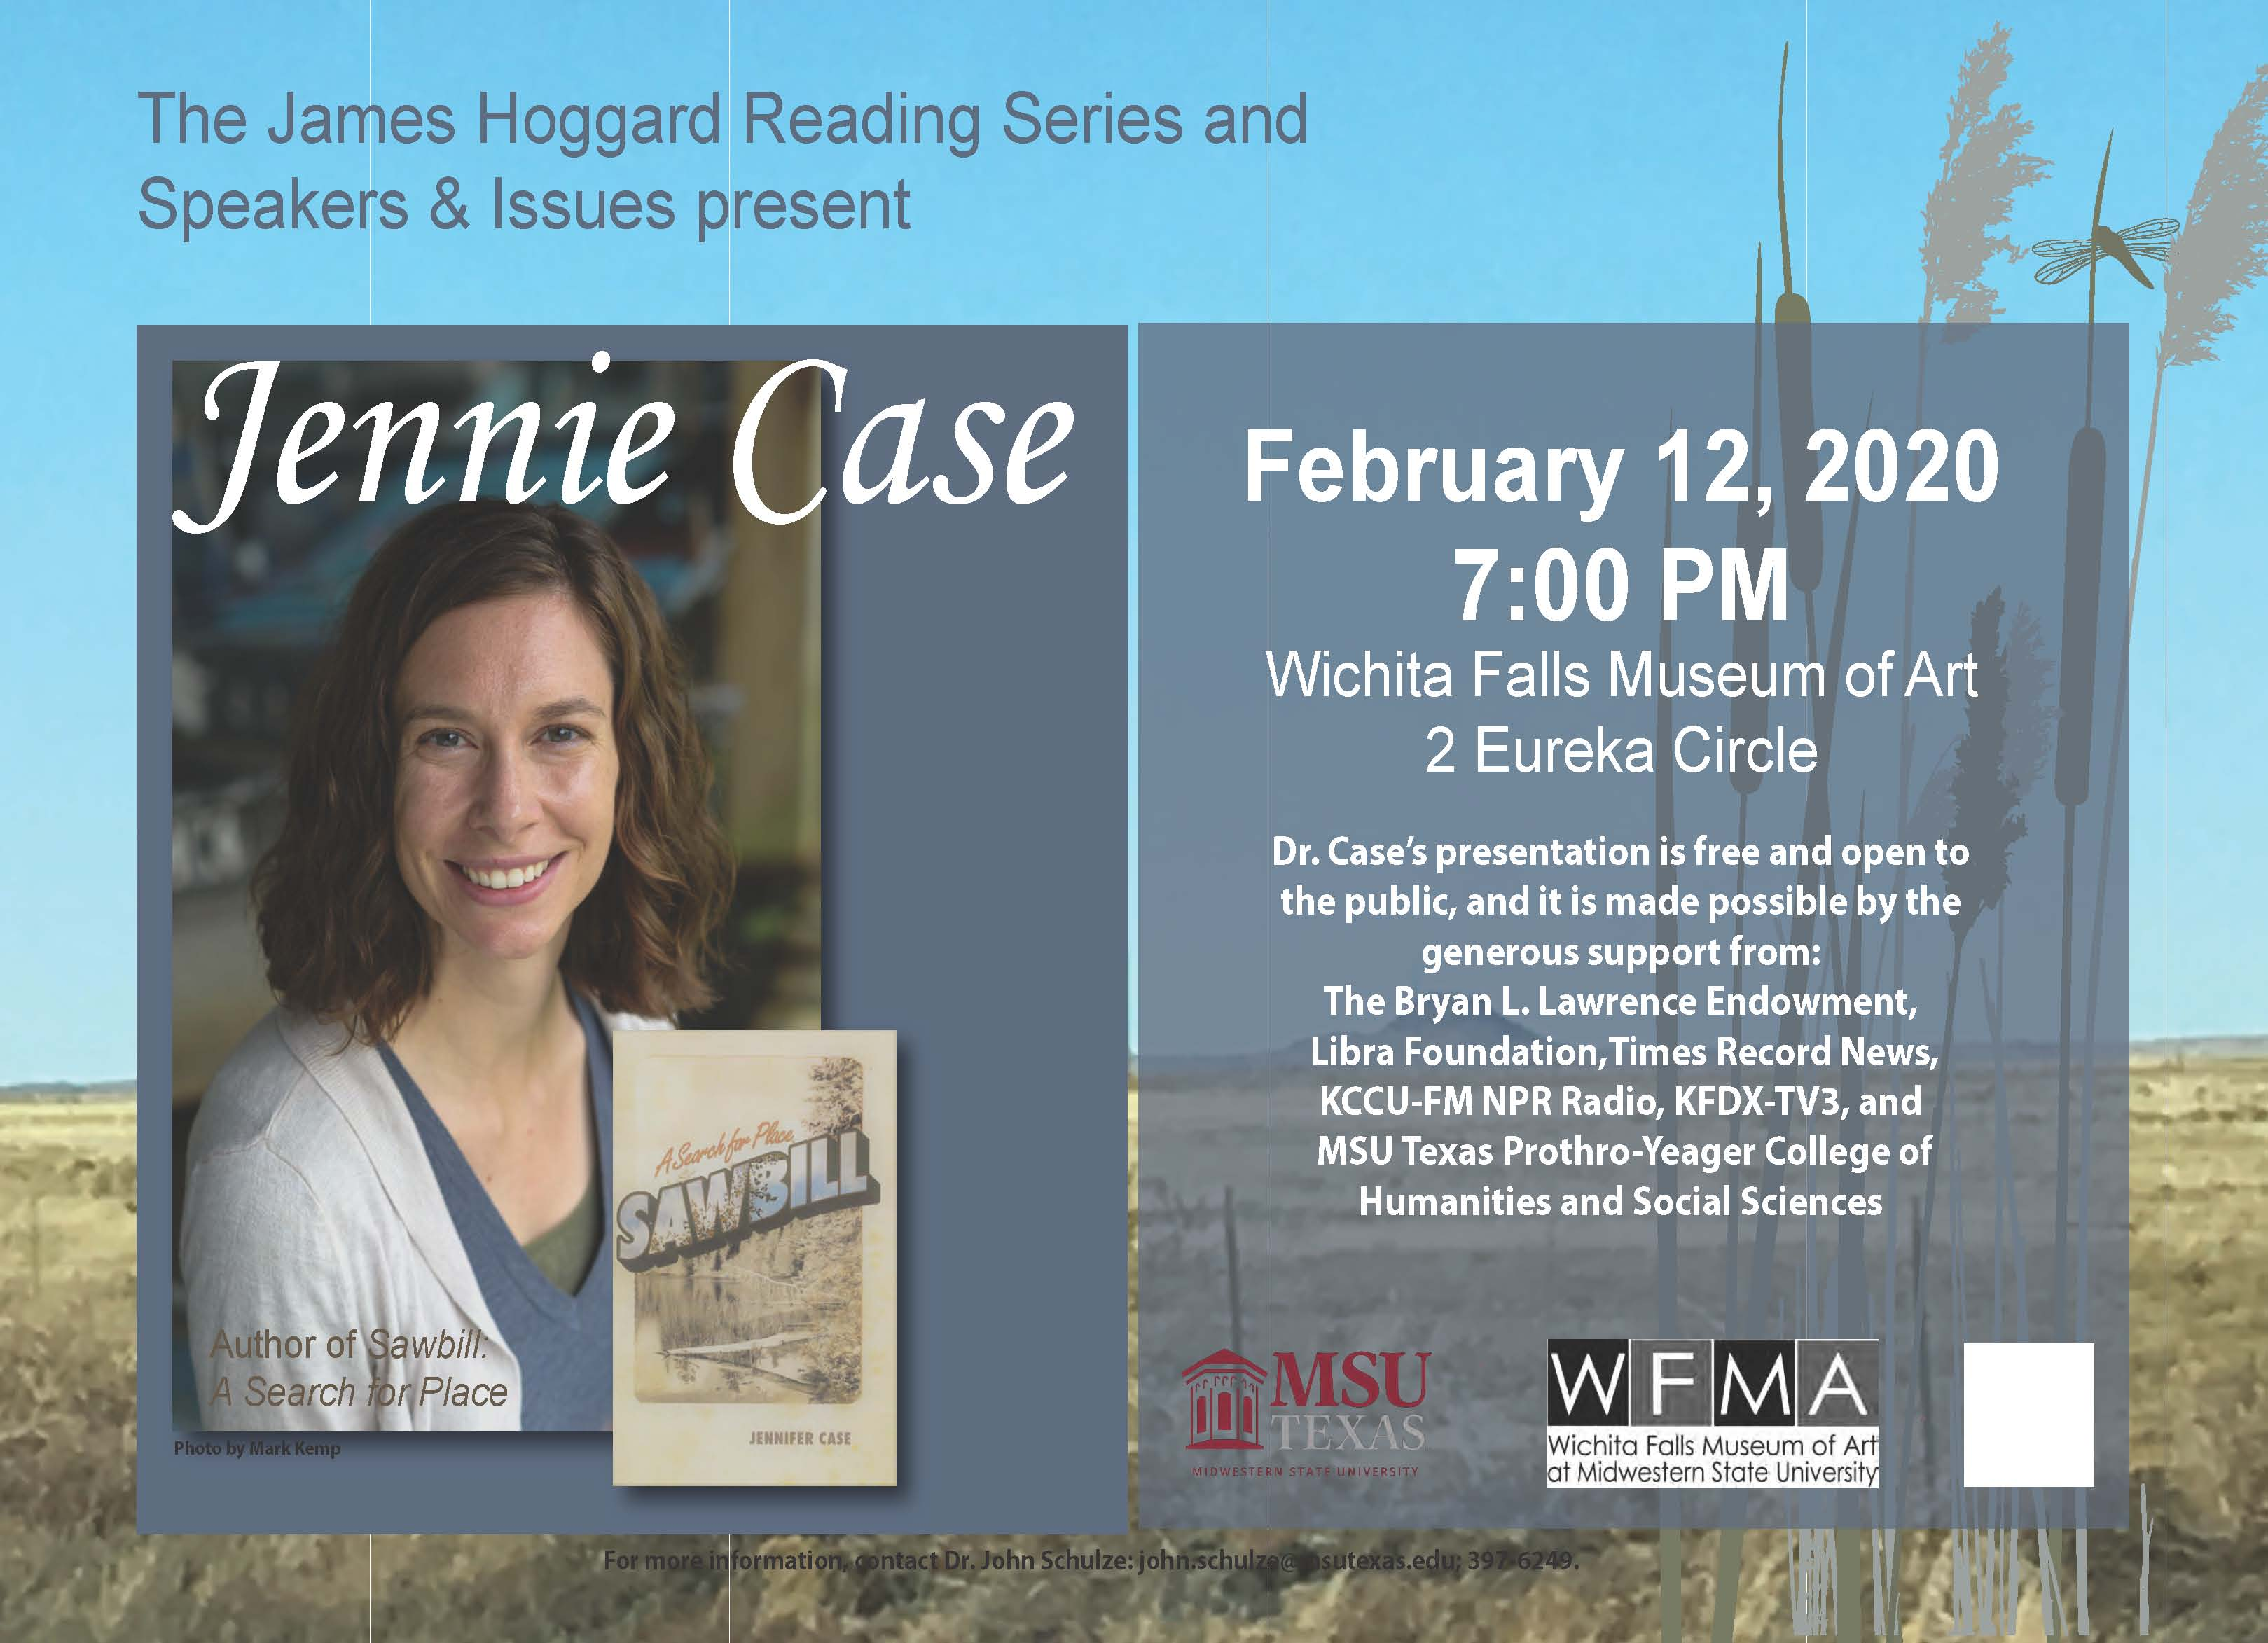 James Hoggard Reading Series